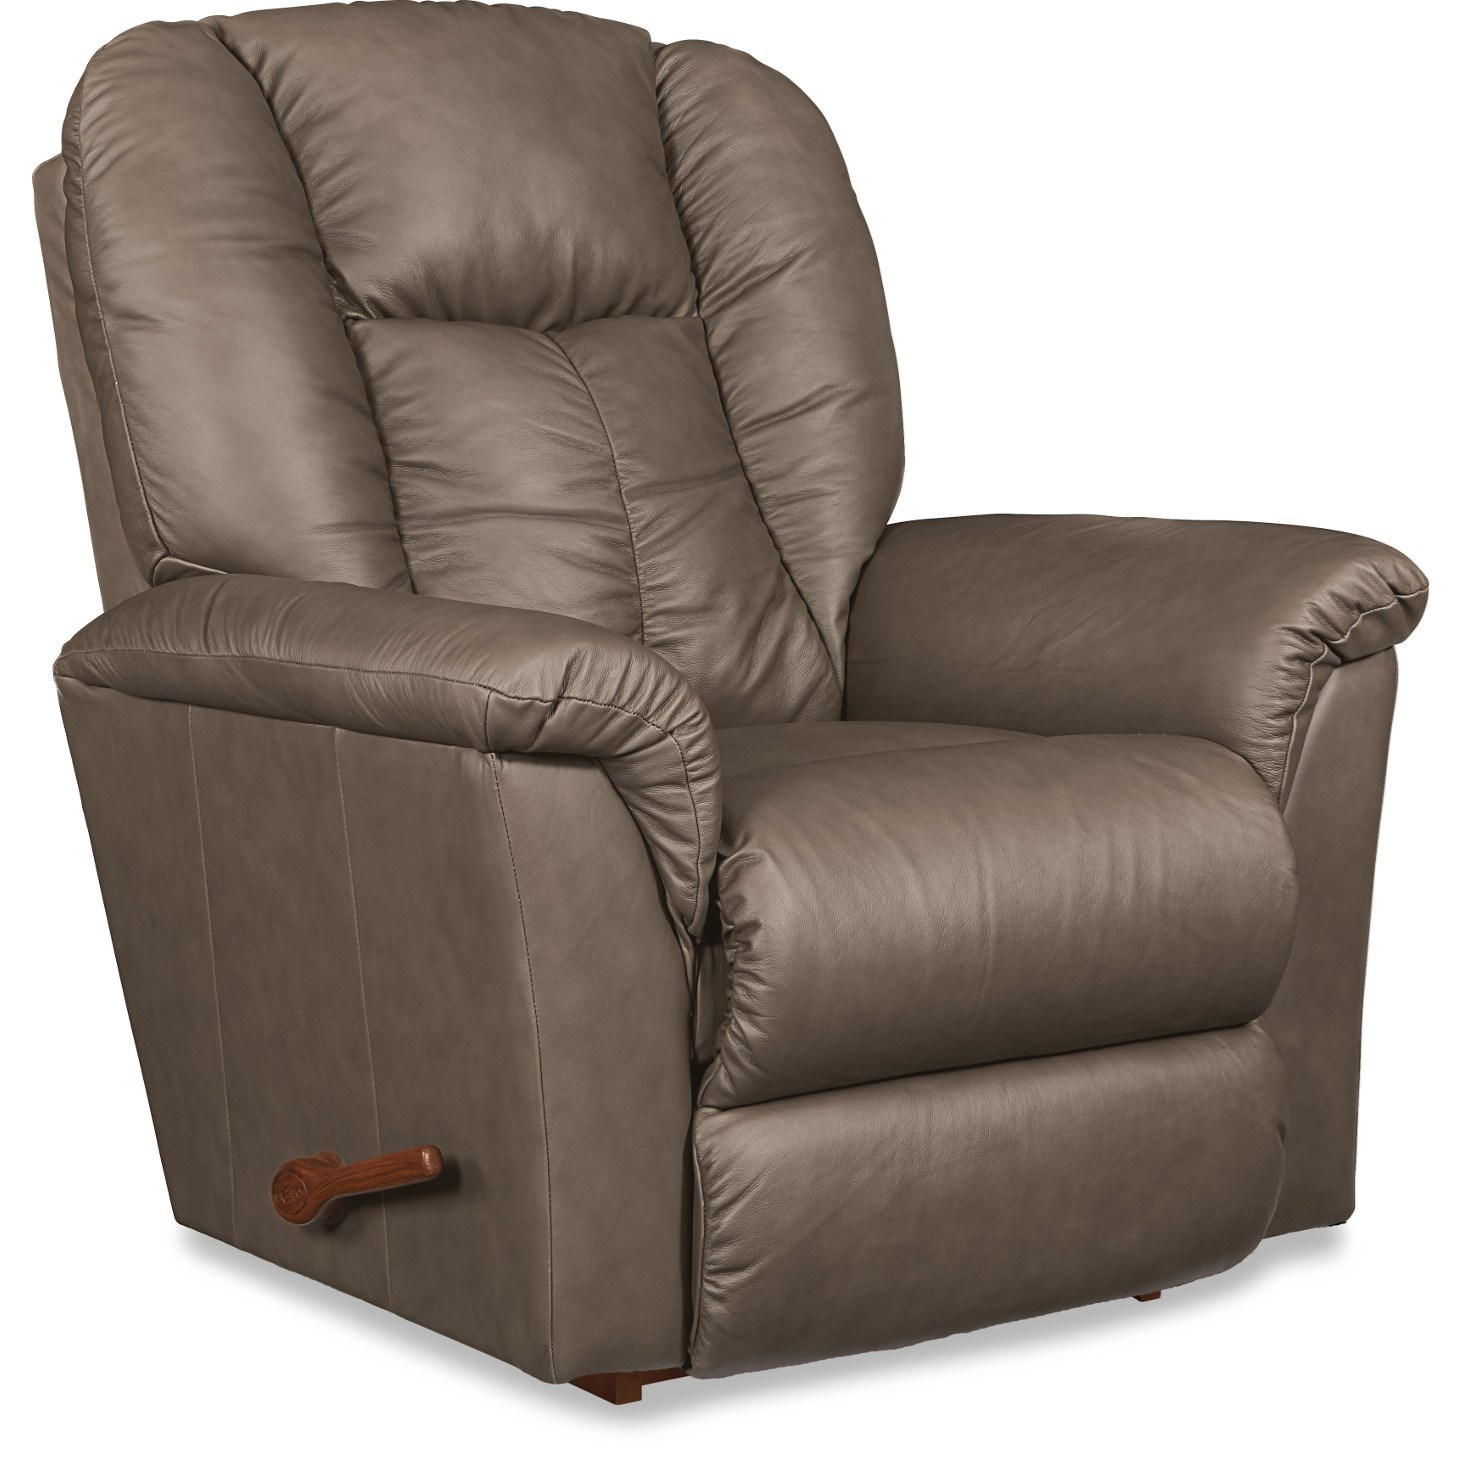 Recliners Jasper Wall Recliner by La-Z-Boy at Sparks HomeStore